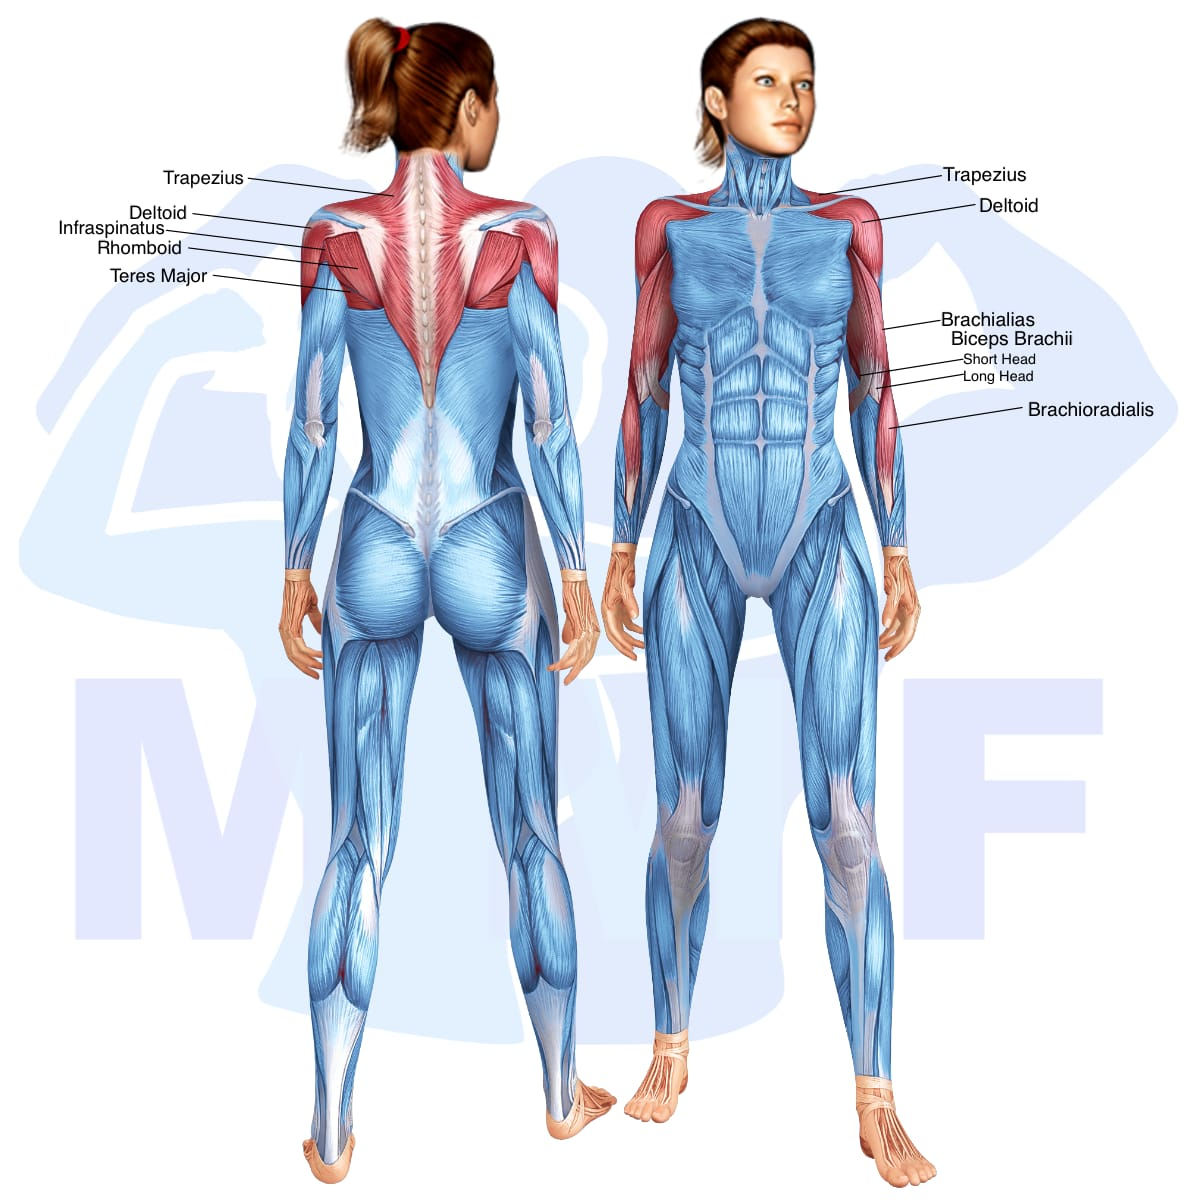 Skeletal muscle systems for a muscular woman, with muscles highlighted in red that are use during resistance band bent over shoulder rows.